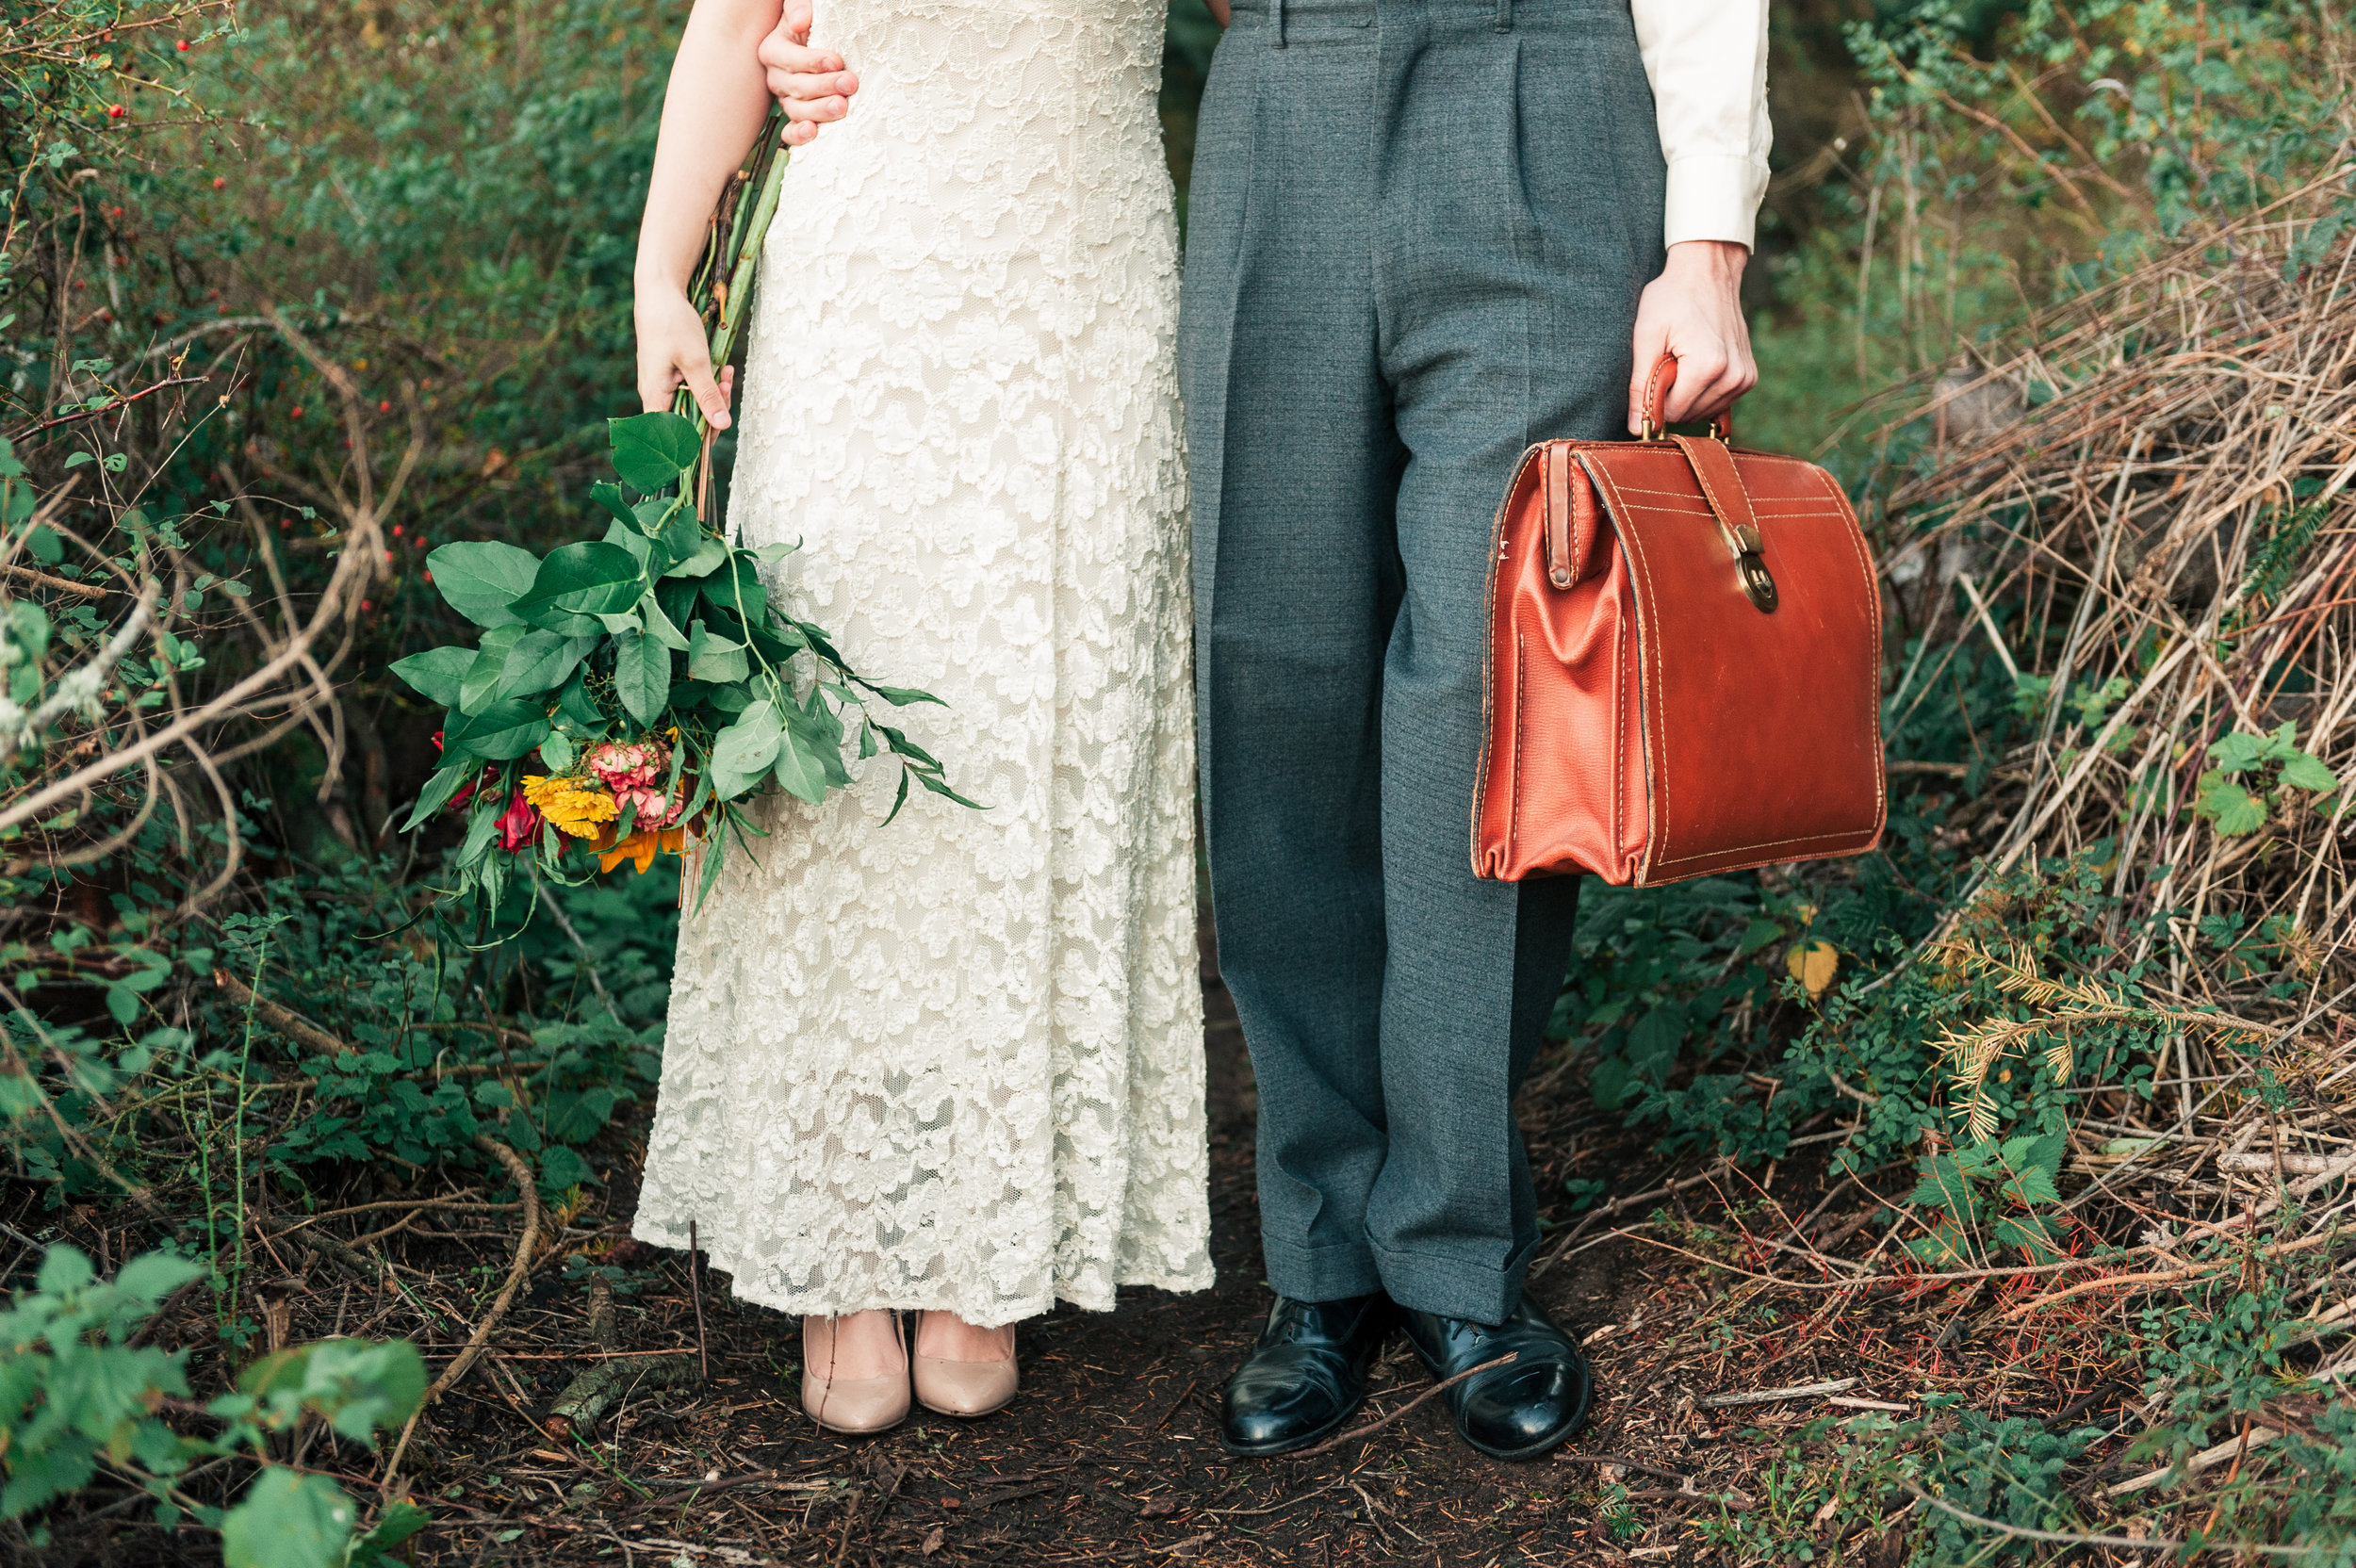 PNW Bride and Groom